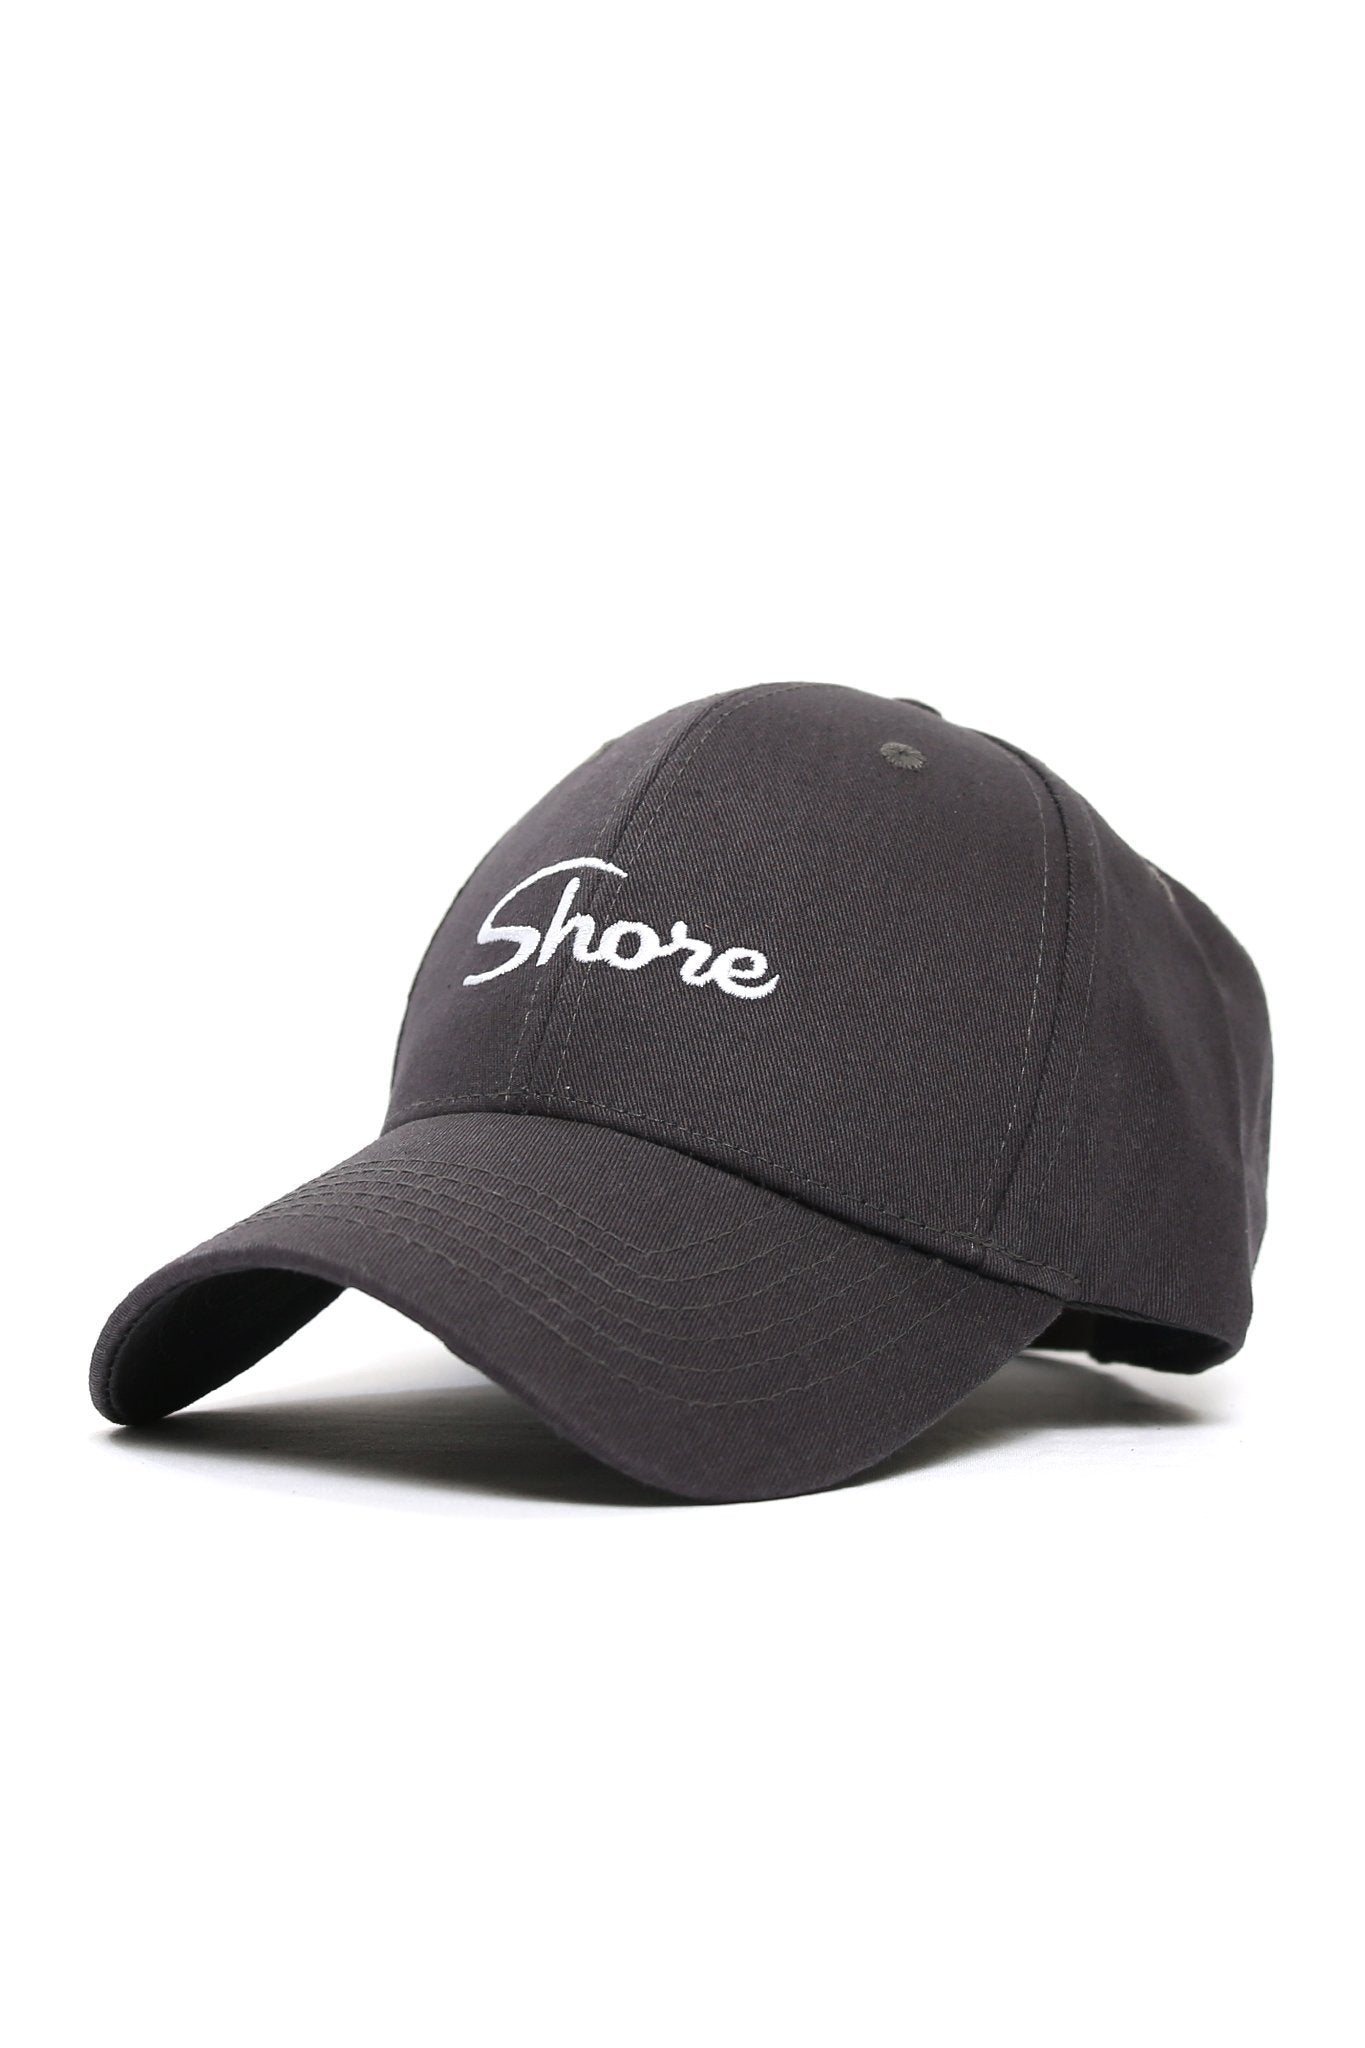 Shore Logo Cap - Charcoal - Shore